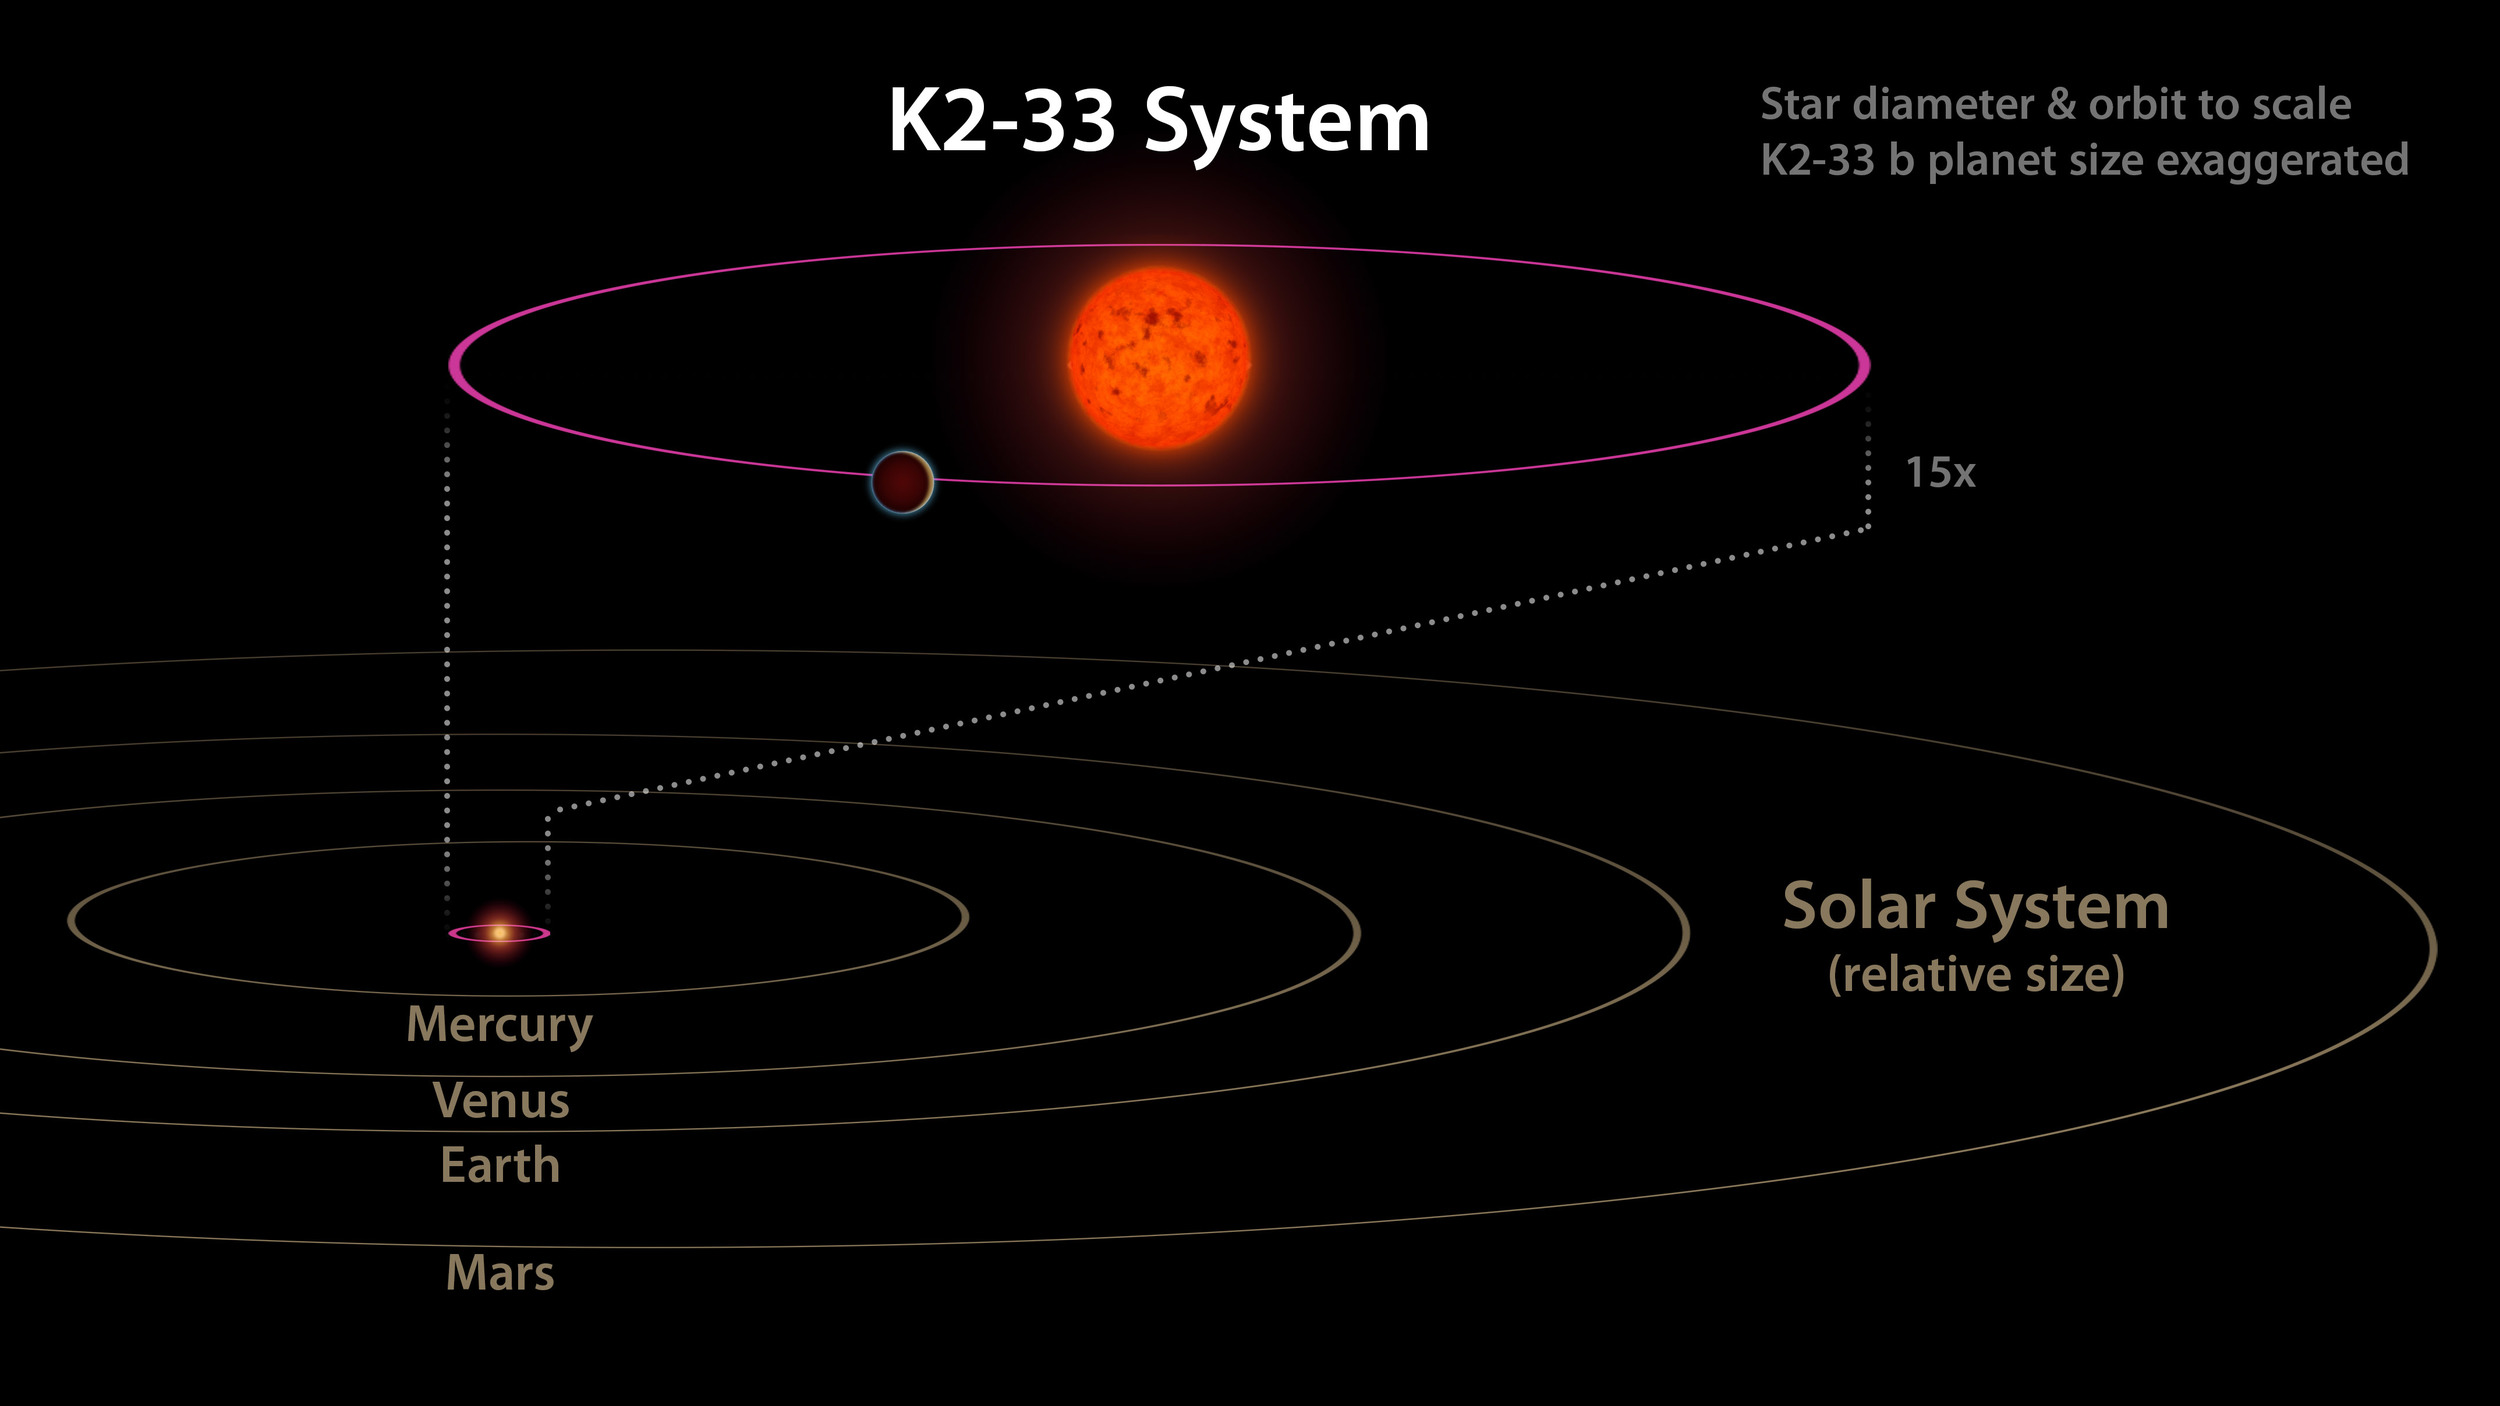 This image shows the K2-33 system, and its planet K2-33b, compared to our own solar system. The planet has a five-day orbit, whereas Mercury orbits our sun in 88 days. The planet is also nearly 10 times closer to its star than Mercury is to the sun. -  Credits: NASA/JPL-Caltech